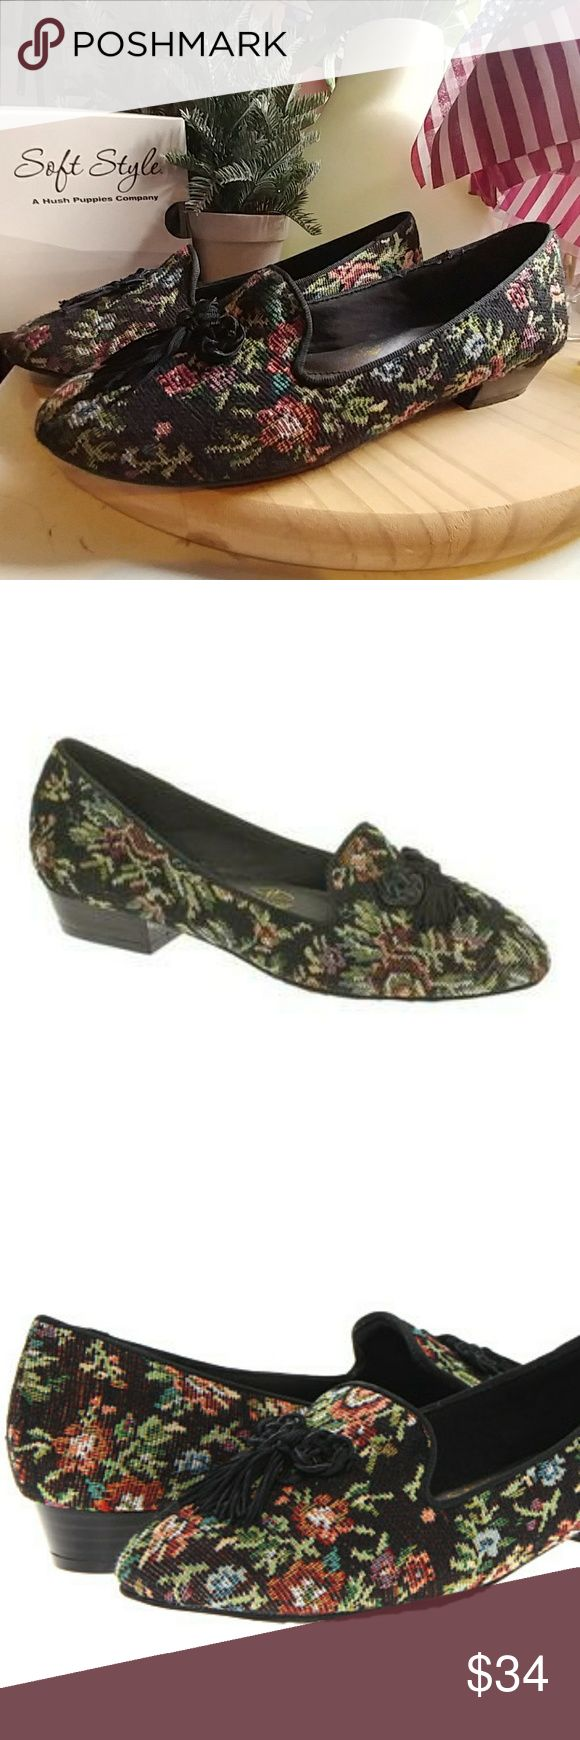 30% OFF ALL BUNDLES OF 2 OR  MORE! Open to offers~ Soft Style Hush Puppies Shayna flats Black tapestry cloth with red blue and green floral pattern and a tassel. very soft and comfortable insole. Worn once. Beautiful loafers!  FOR ALL MY LISTINGS: All my items are clean and typically in excellent, like new condition, unless otherwise stated. Color may appear slightly different due to computer picture resolution and individual monitor settings. All sales are final--no returns. Please ask…